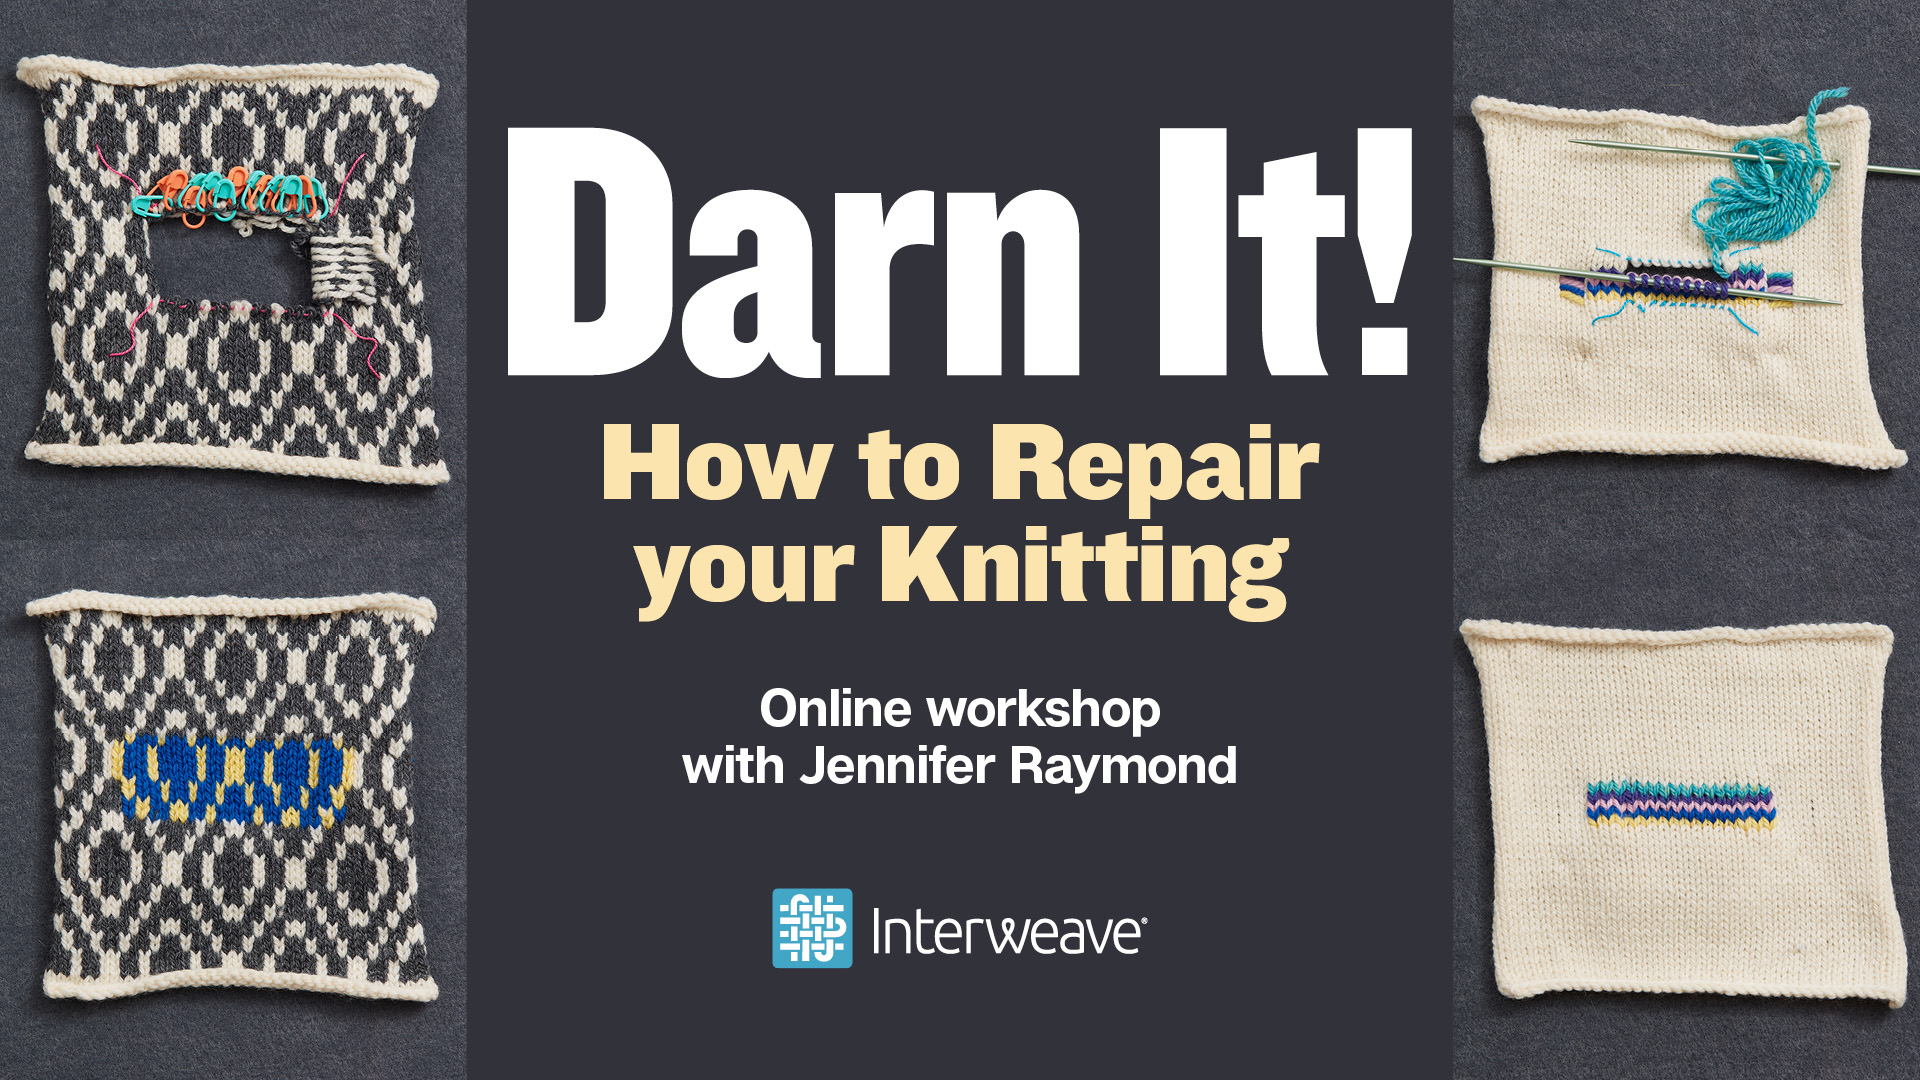 c9eaee0c9c1588 I've been working on my new class from Interweave, Darn It! How to Repair  your Knitting for several years. Since I began offering repair courses, ...